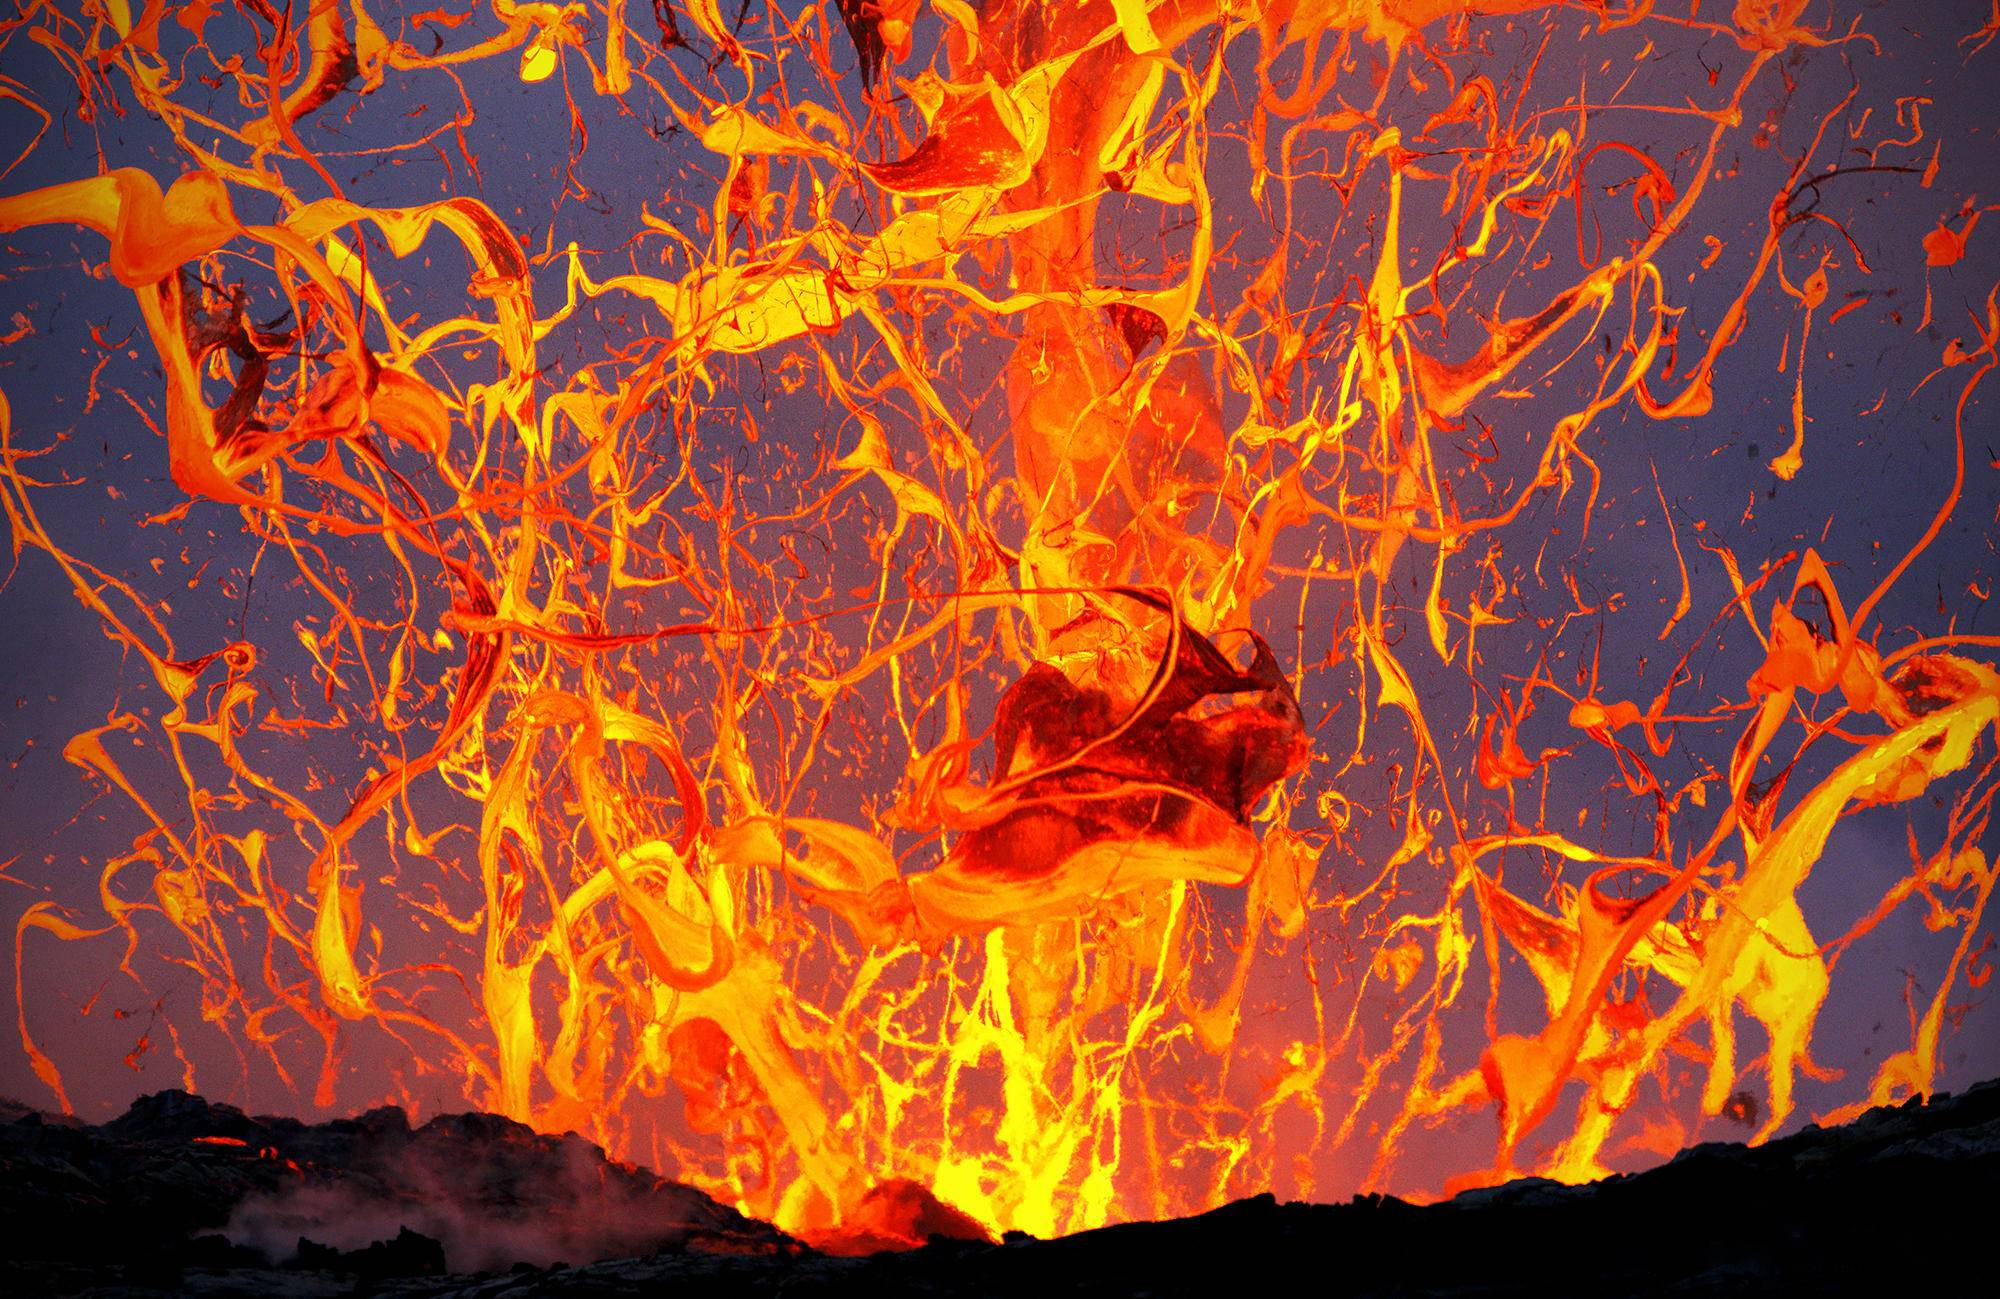 Exploding Lava Bubble